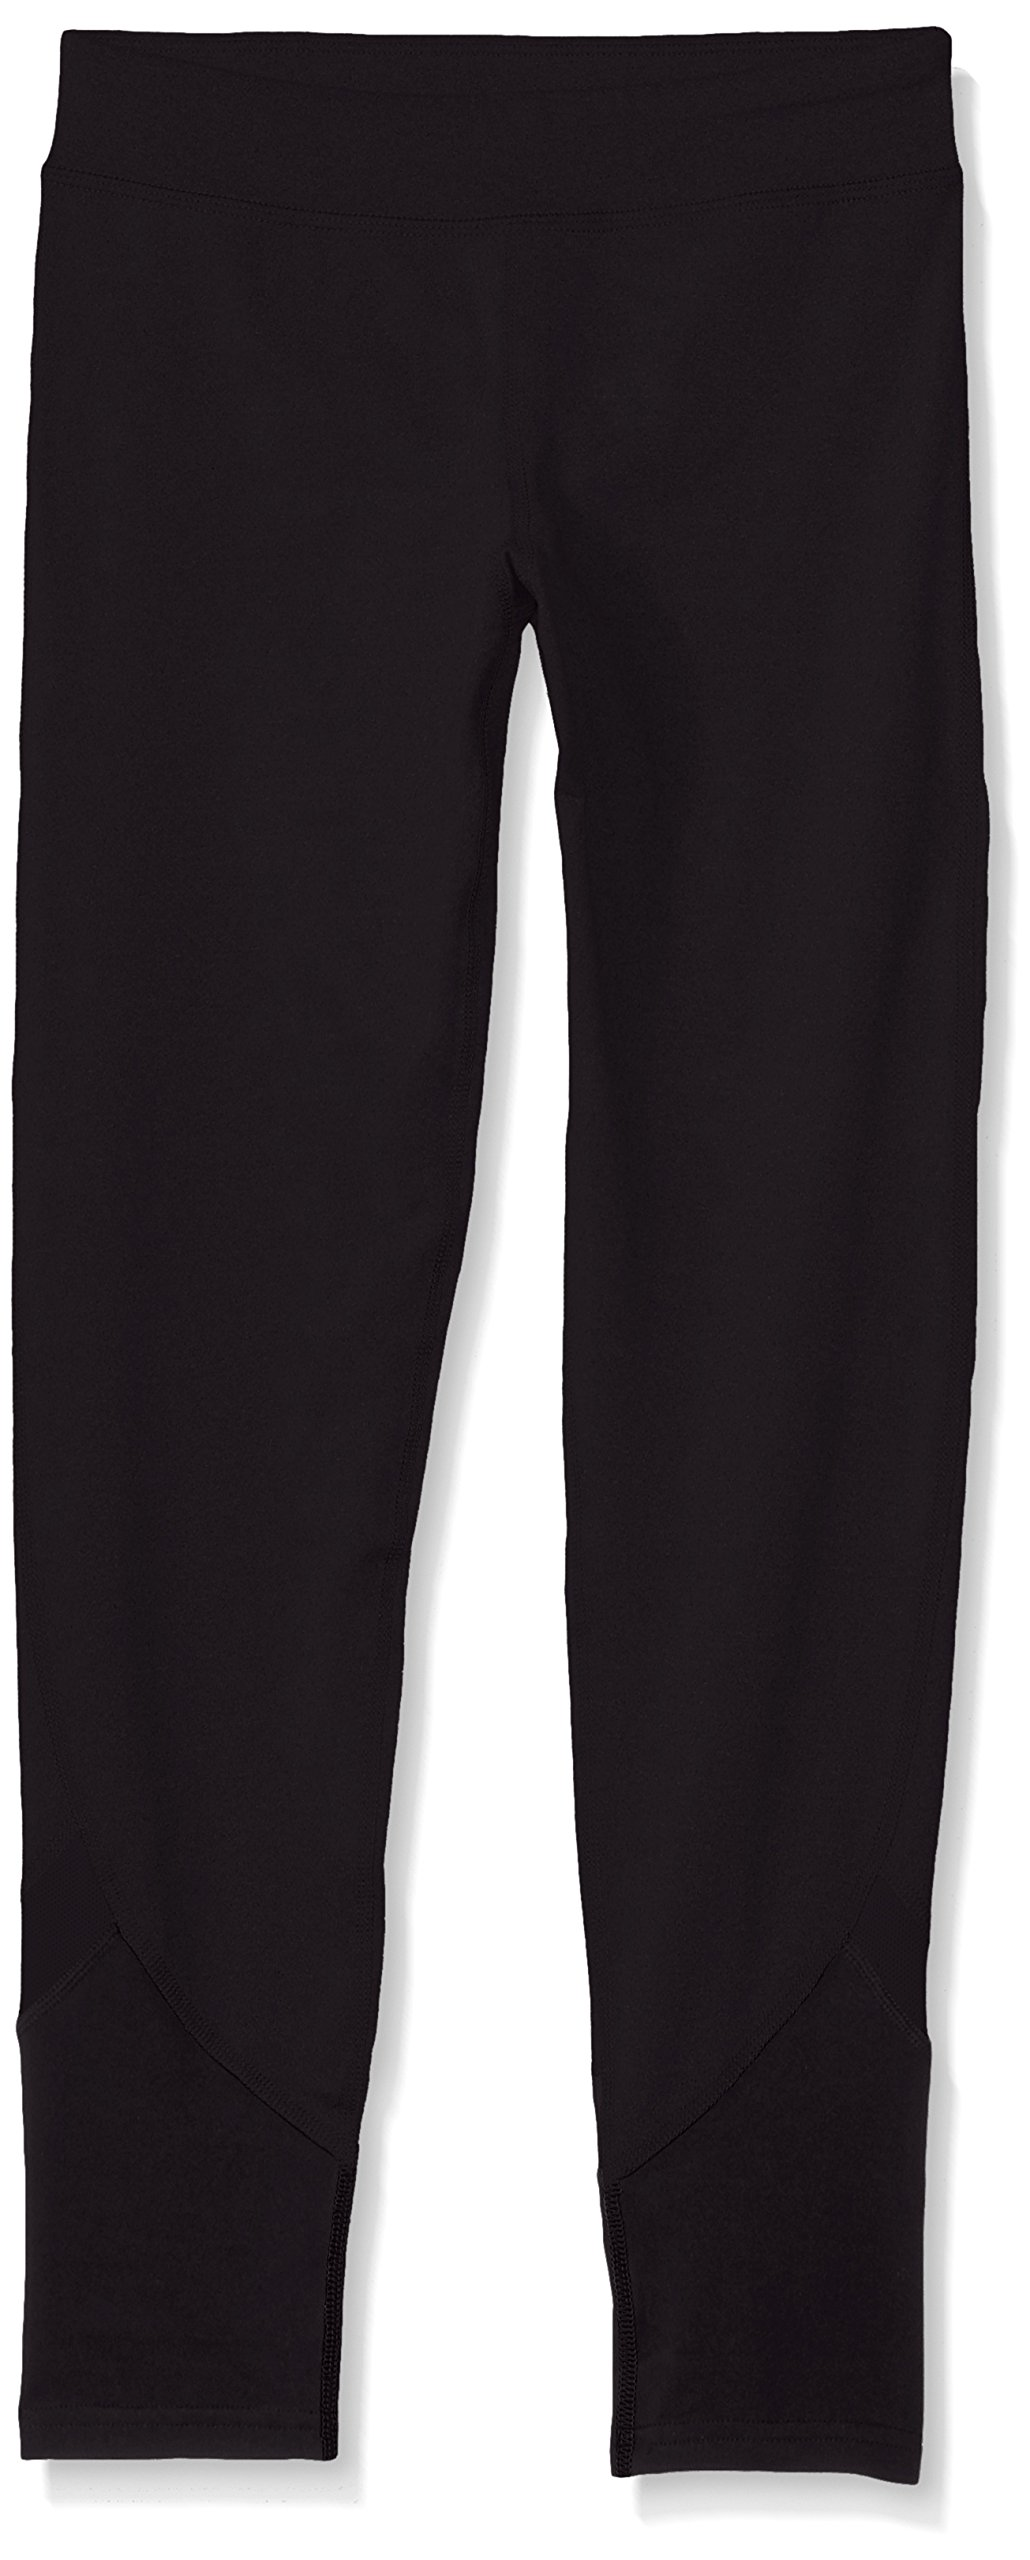 Hanes Girls' Big Blocked Stretch Legging